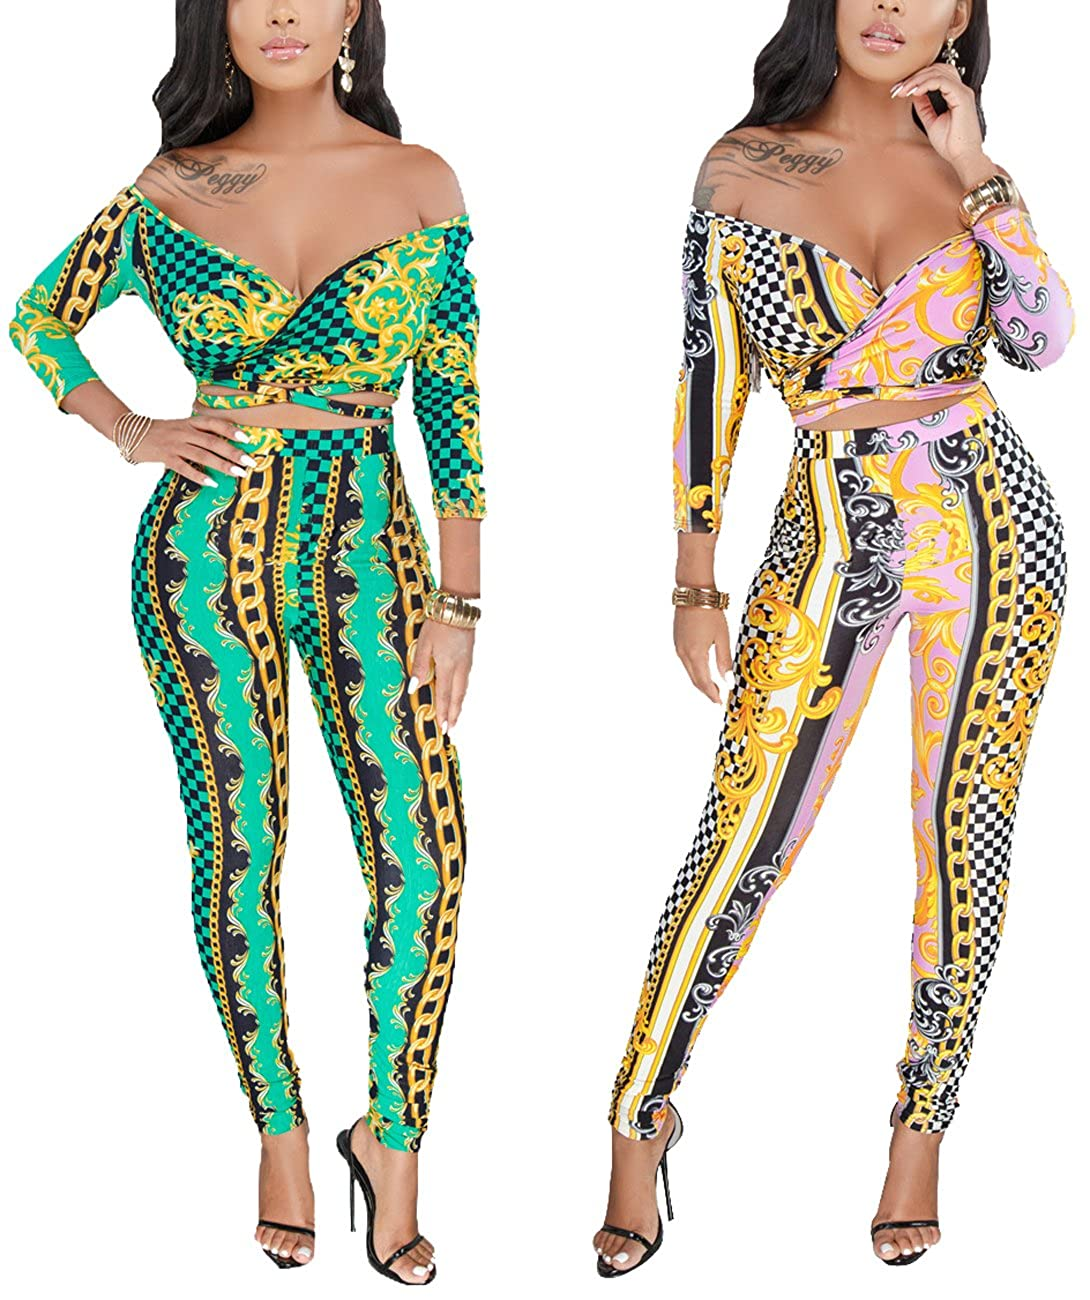 dd5b1afa15b Women Sexy Bodycon Jumpsuits Long Sleeves Crop Top High Waist Skinny Long  Pants Bottom Sets 2 Pieces Outfits at Amazon Women s Clothing store